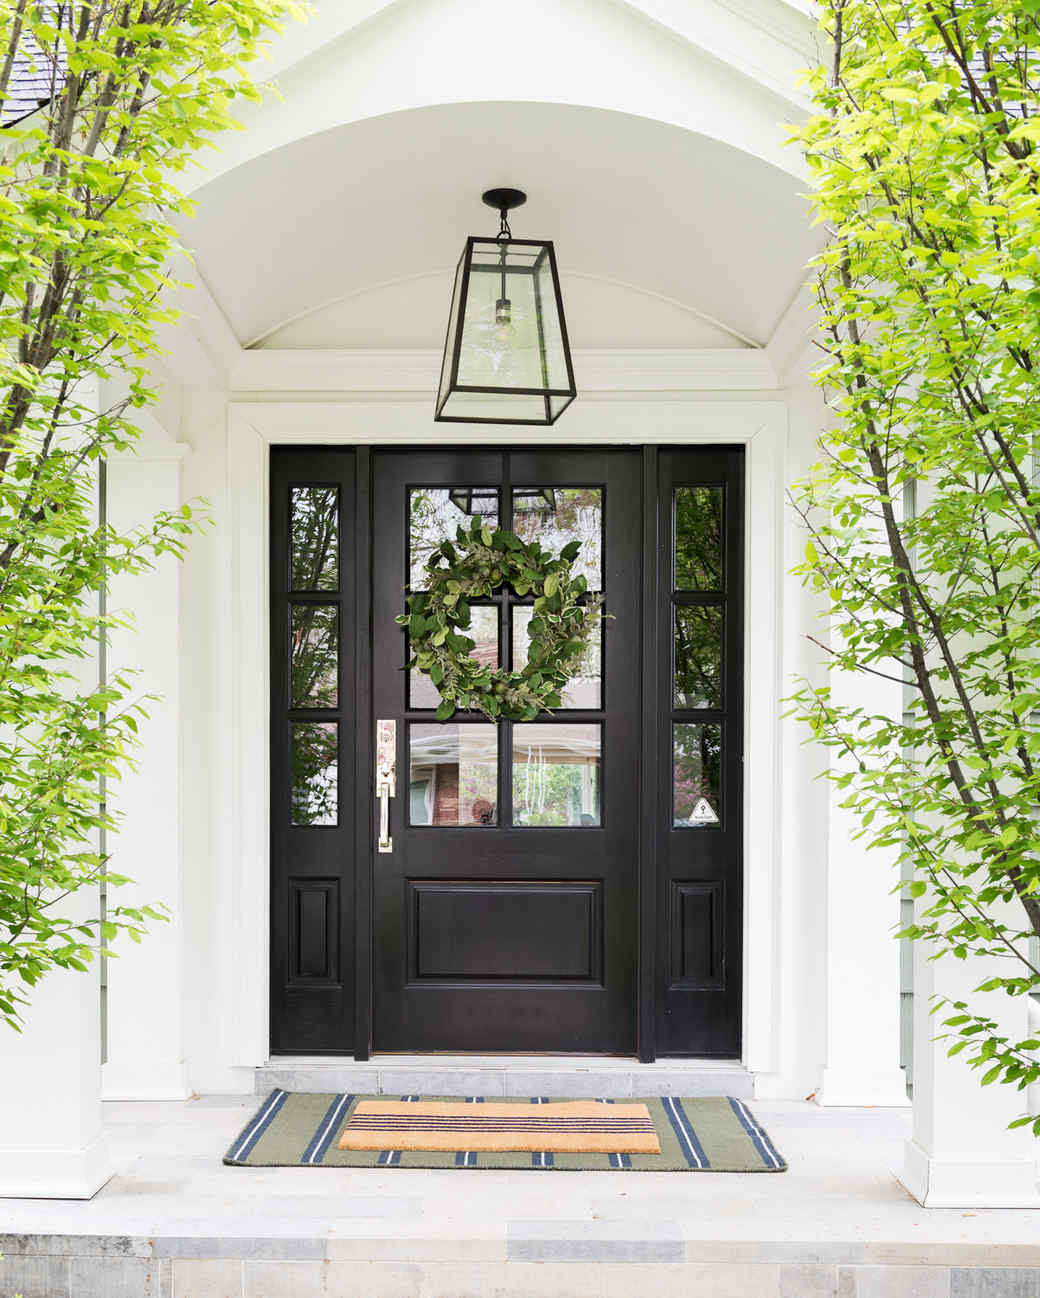 Nine Creative Ways to Increase Your Home's Curb Appeal